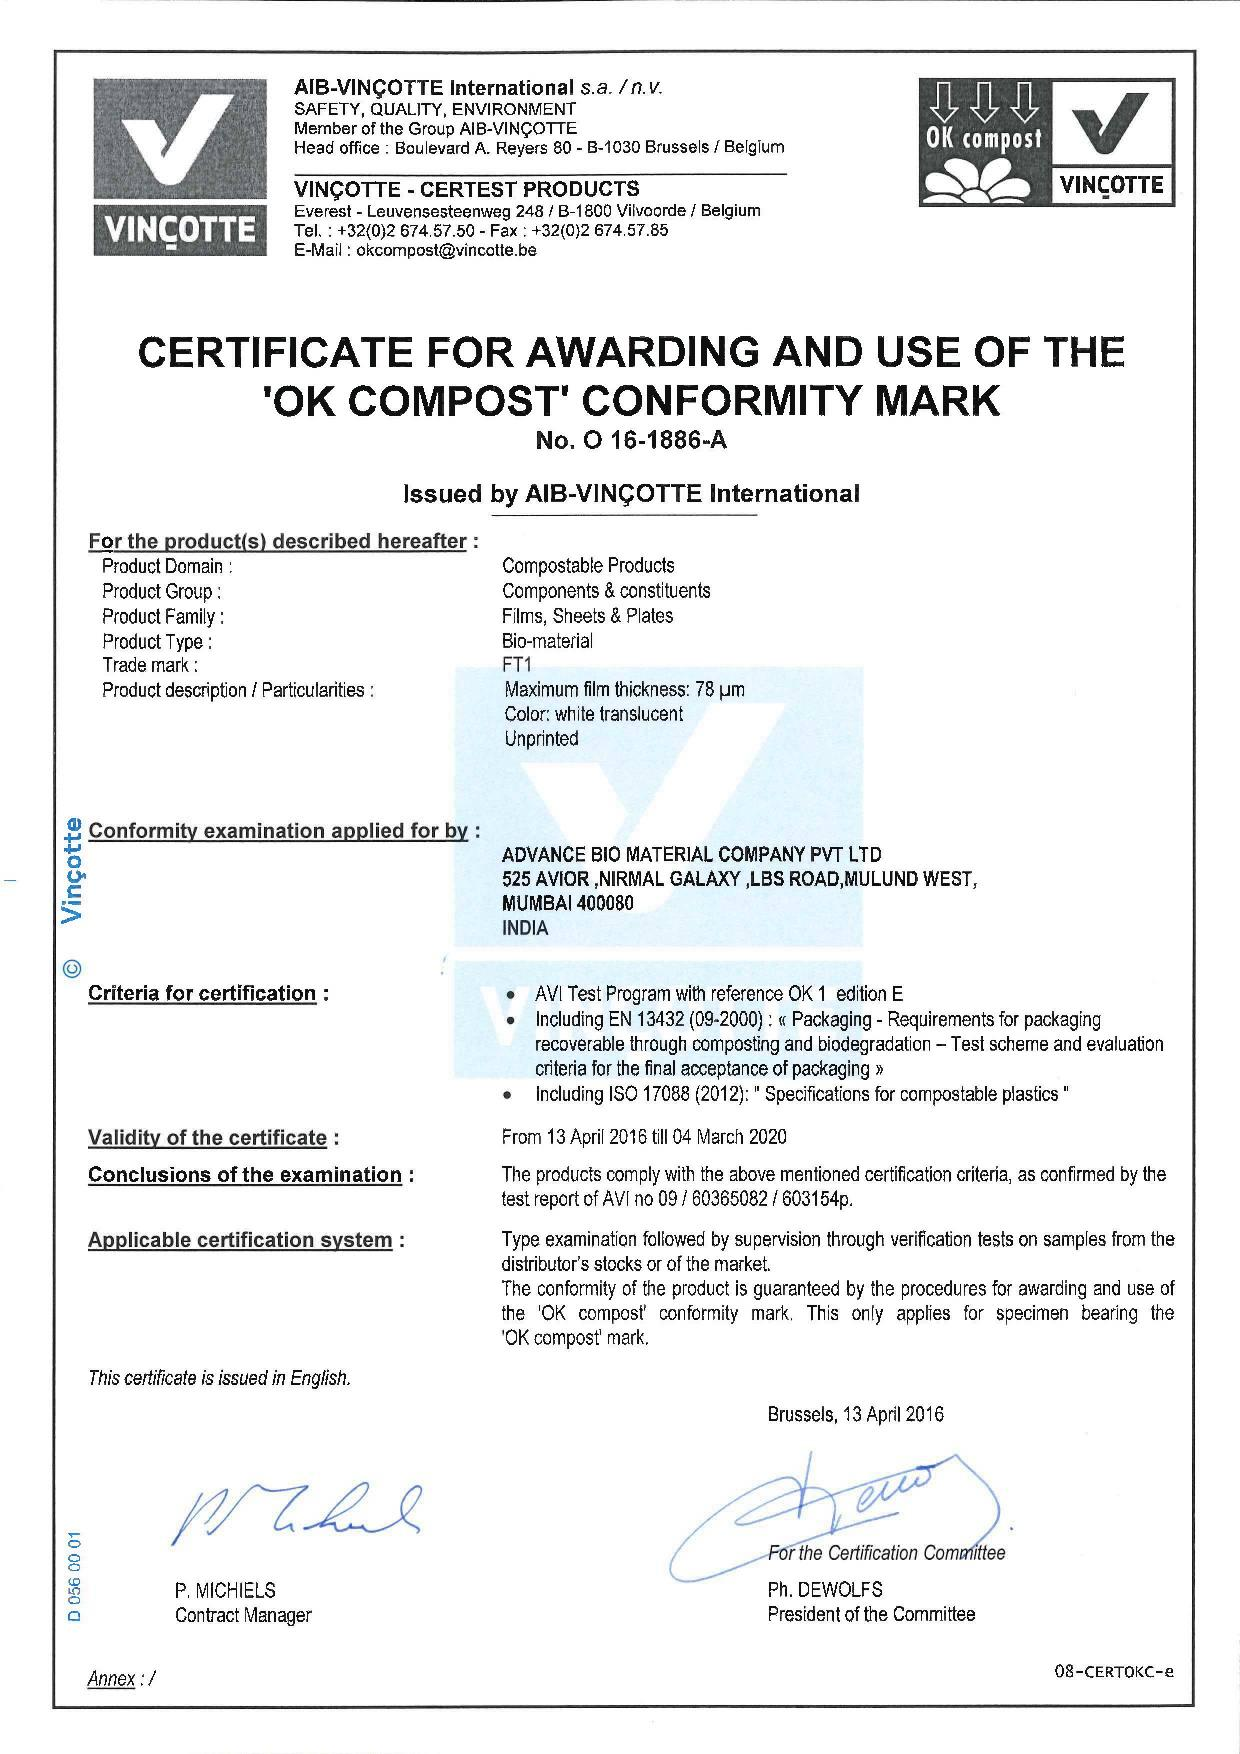 Certificate Issued by AIB-VINCOTTE International